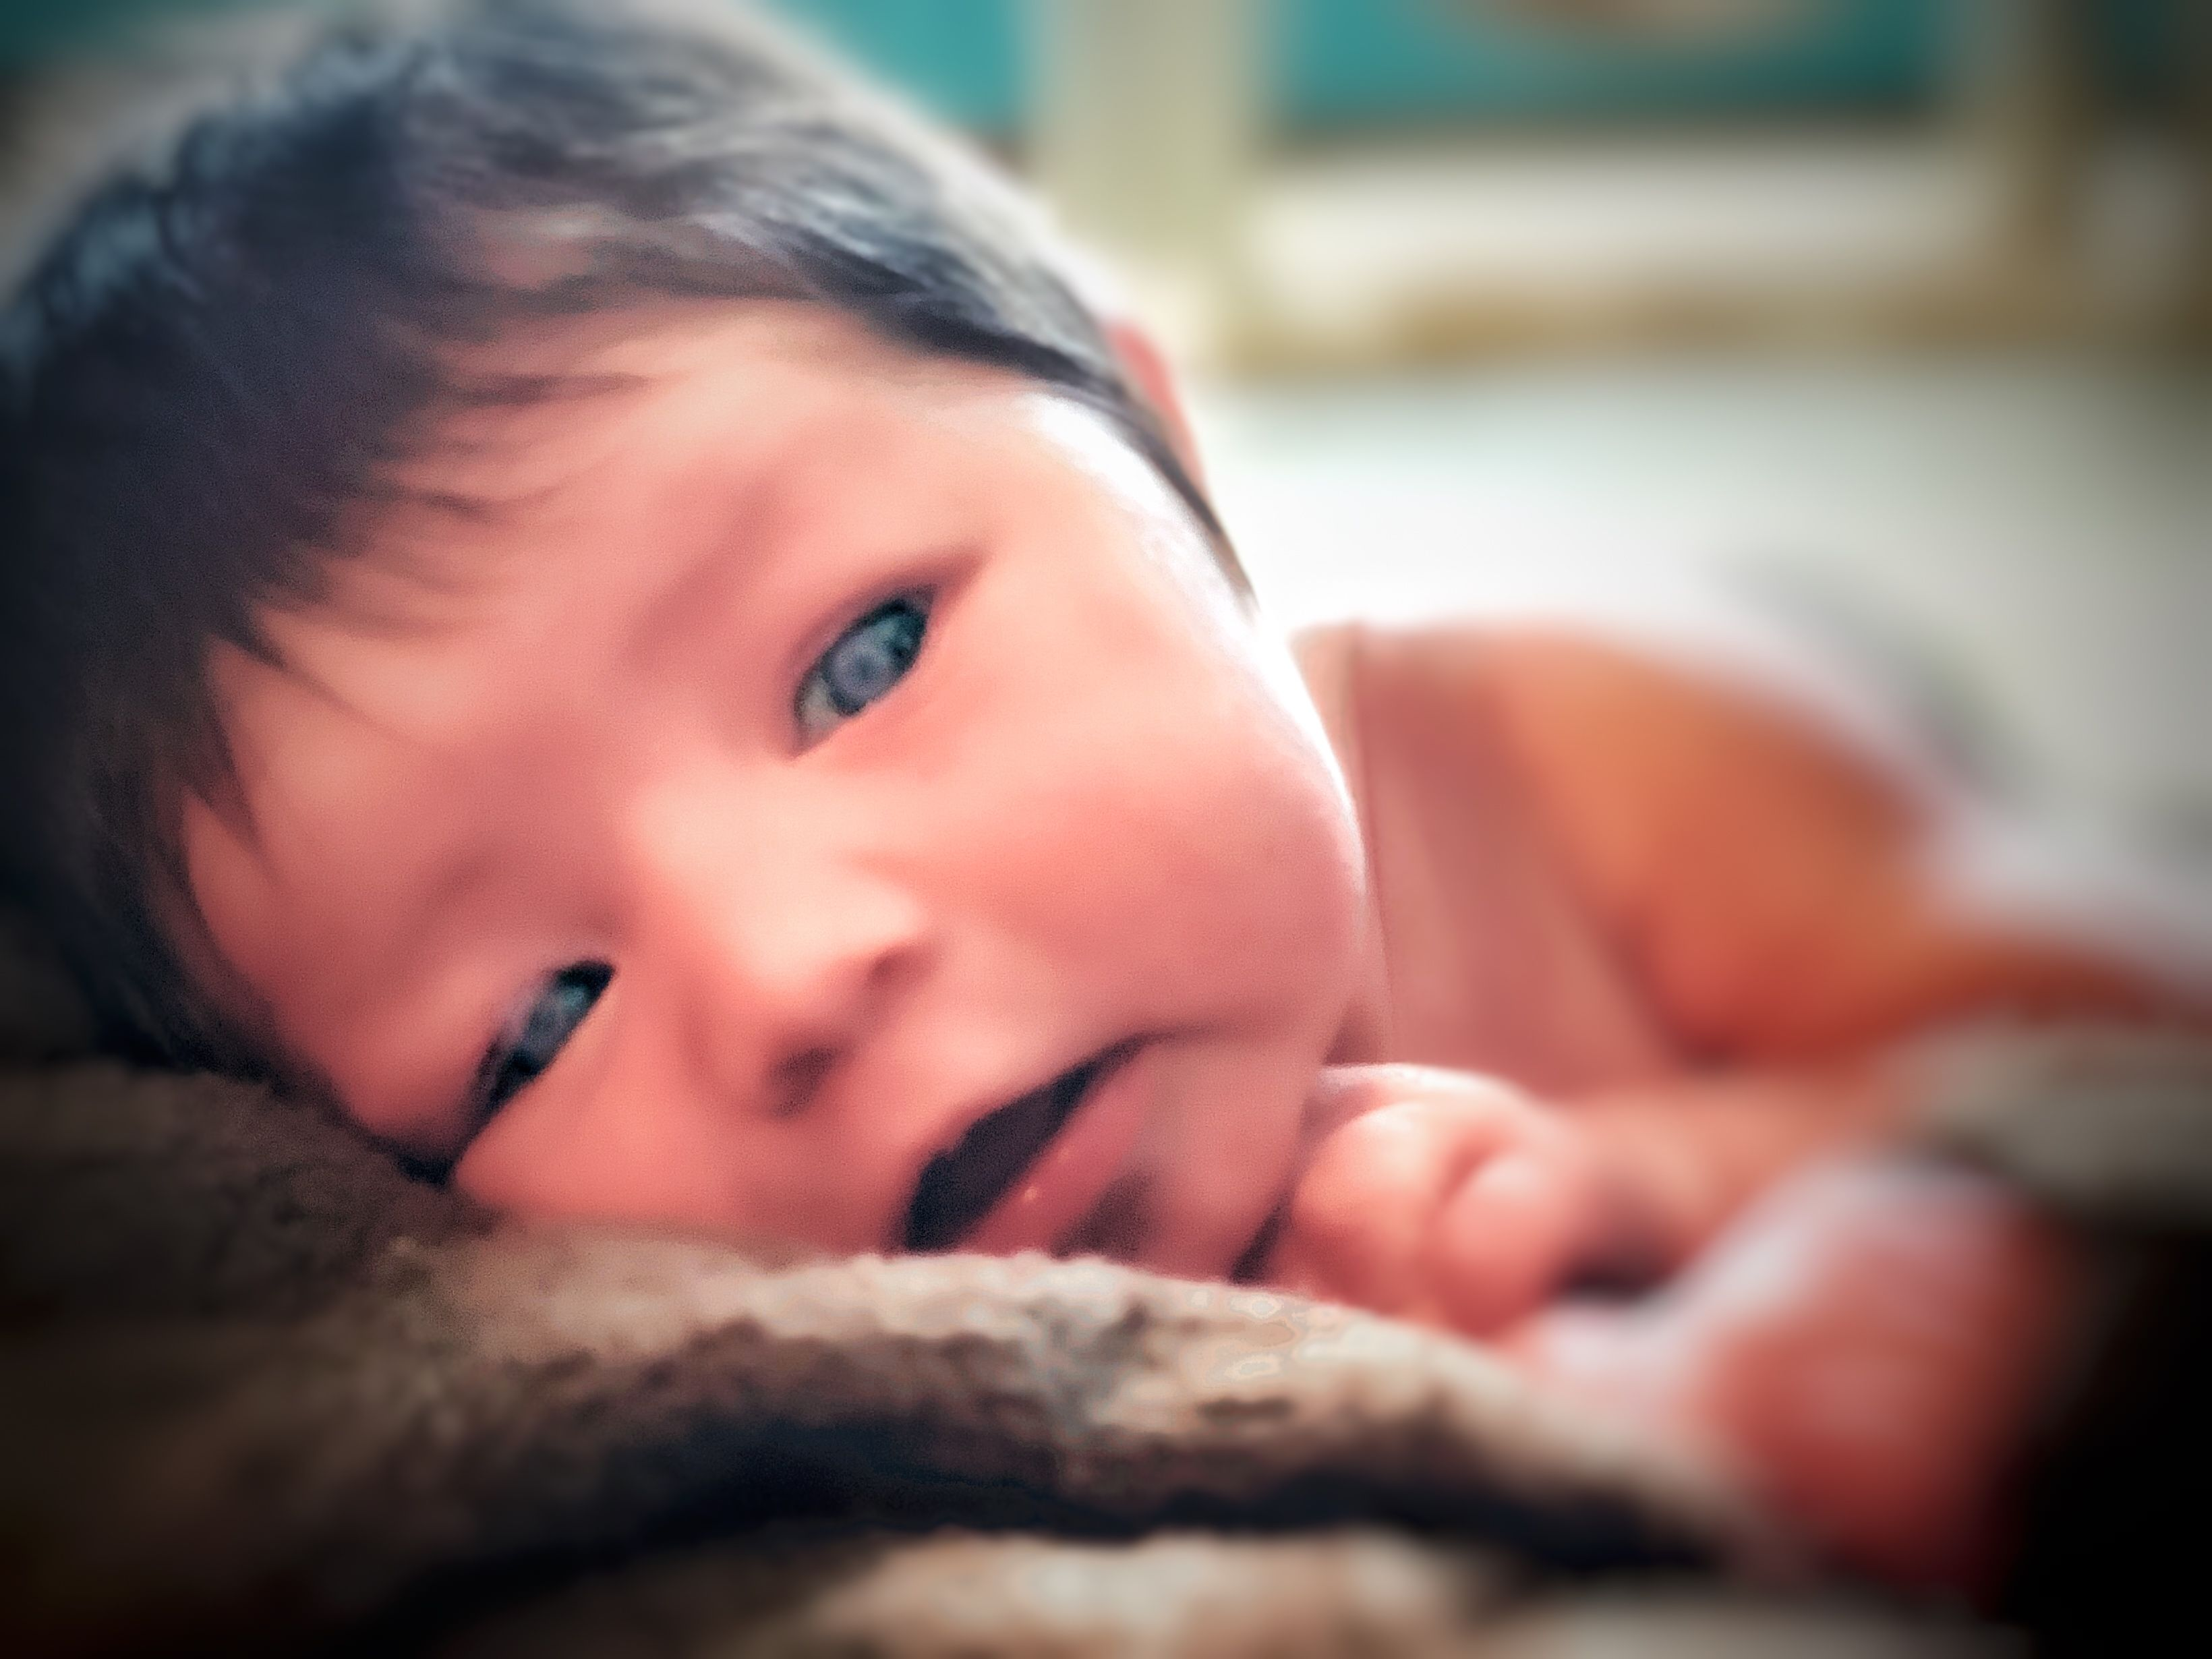 Iphone X Newborn Photography